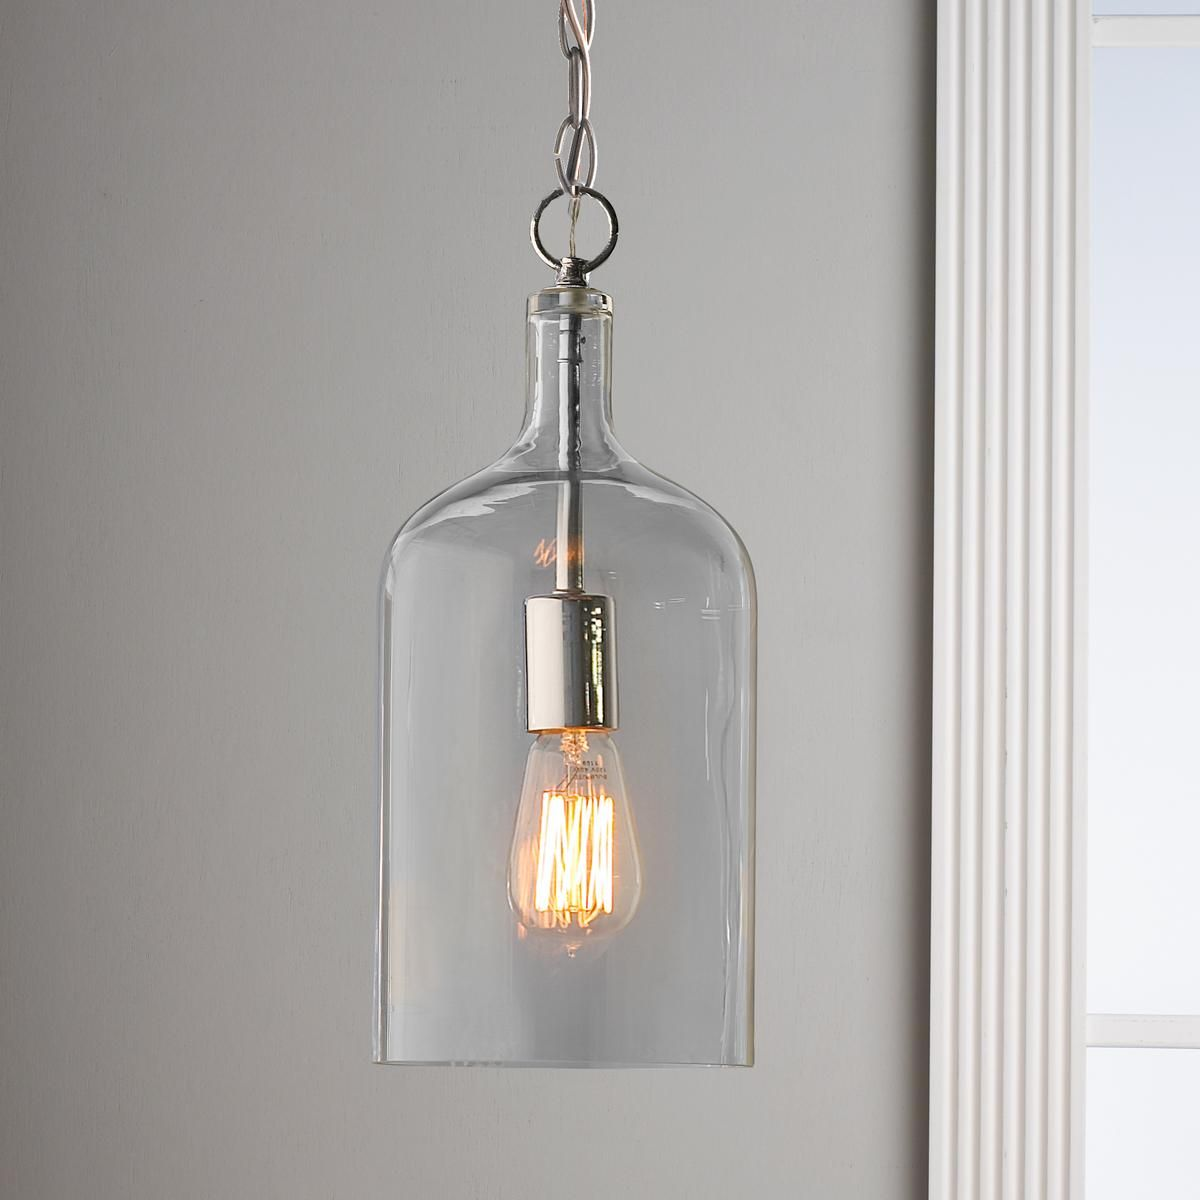 Pendant Island Lights Glass Jug Pendant Light Discover Best Ideas About